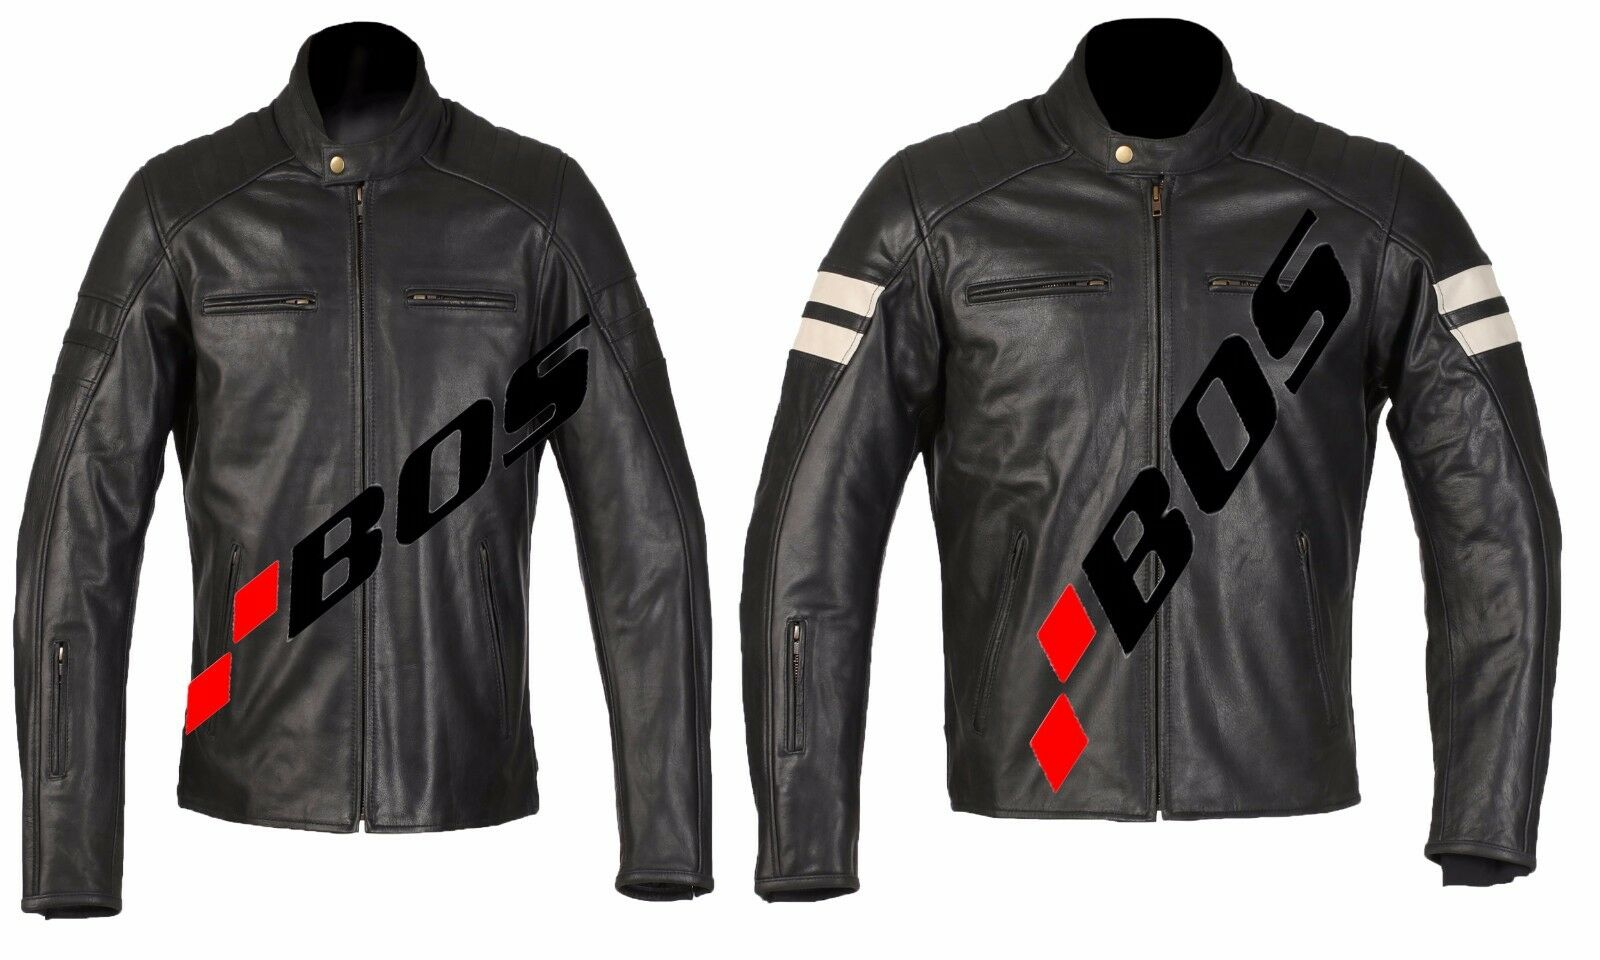 motorradjacke jacke herren motorrad lederjacke vintage. Black Bedroom Furniture Sets. Home Design Ideas